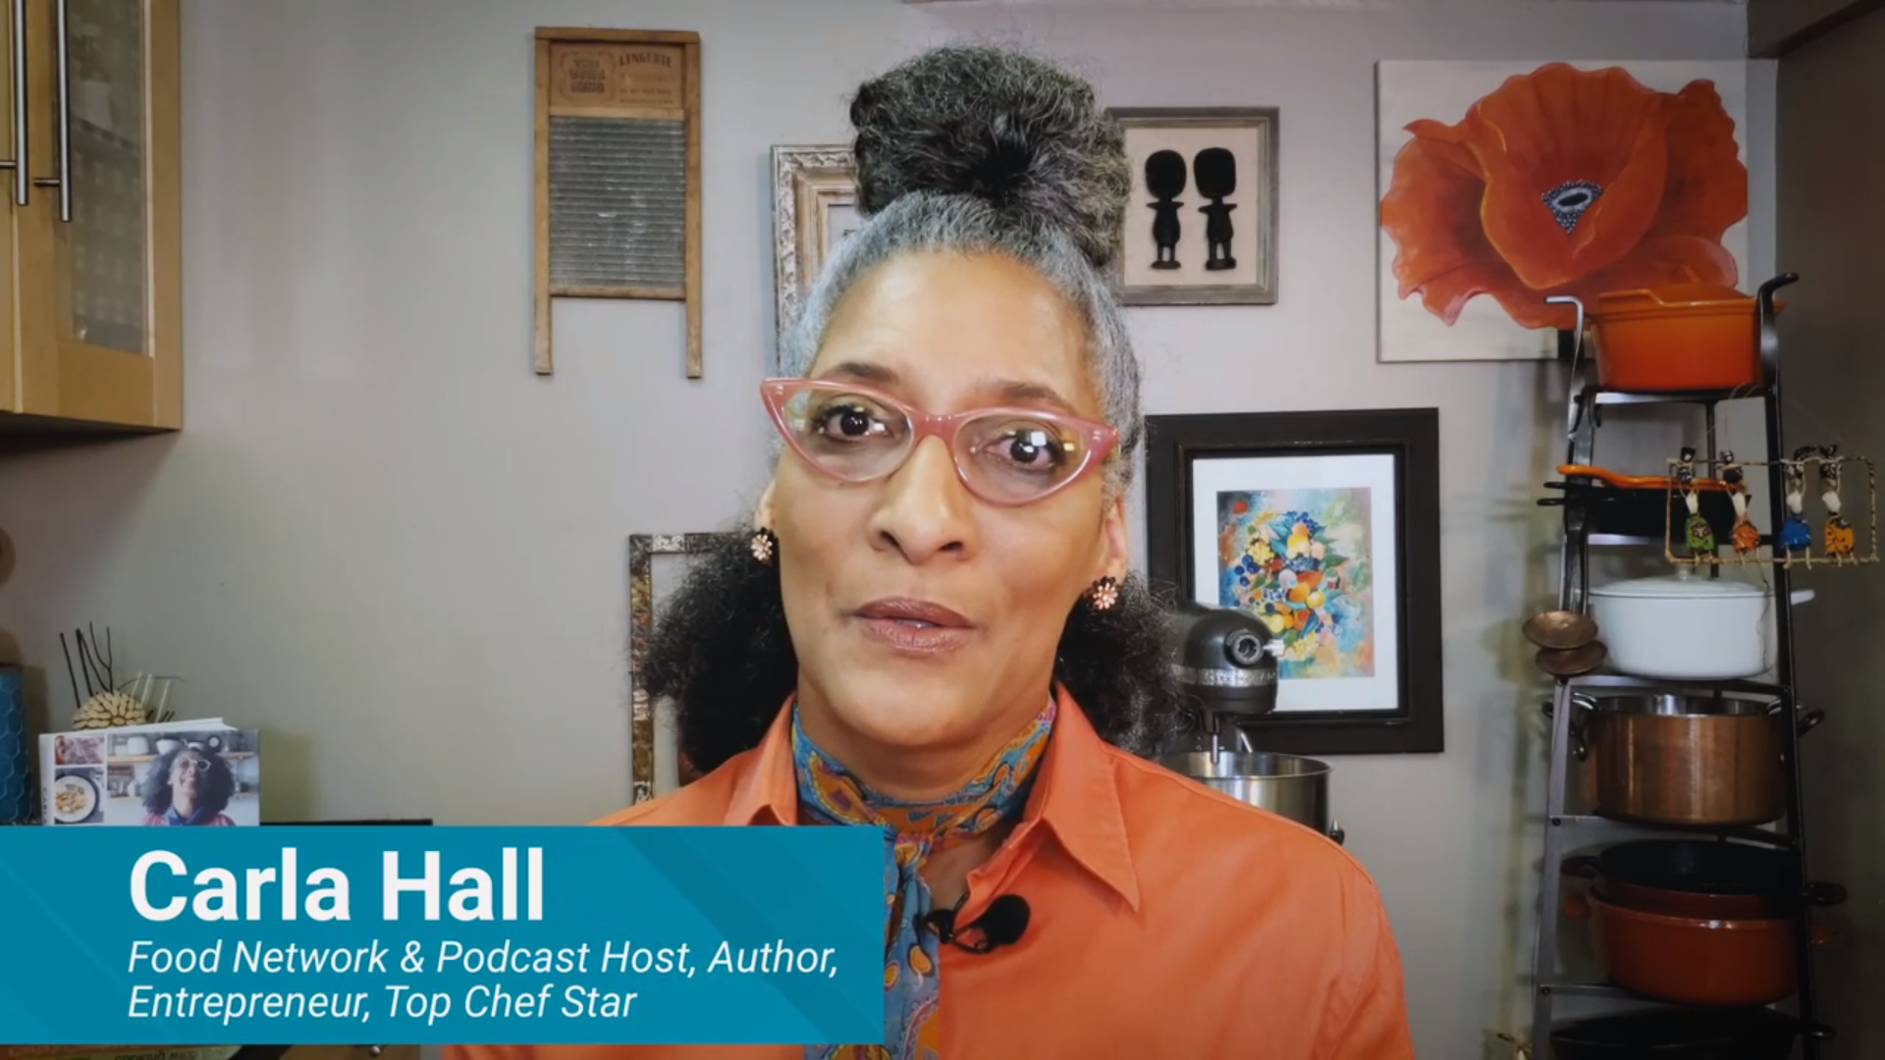 Food Network's Carla Hall's advice to small businesses